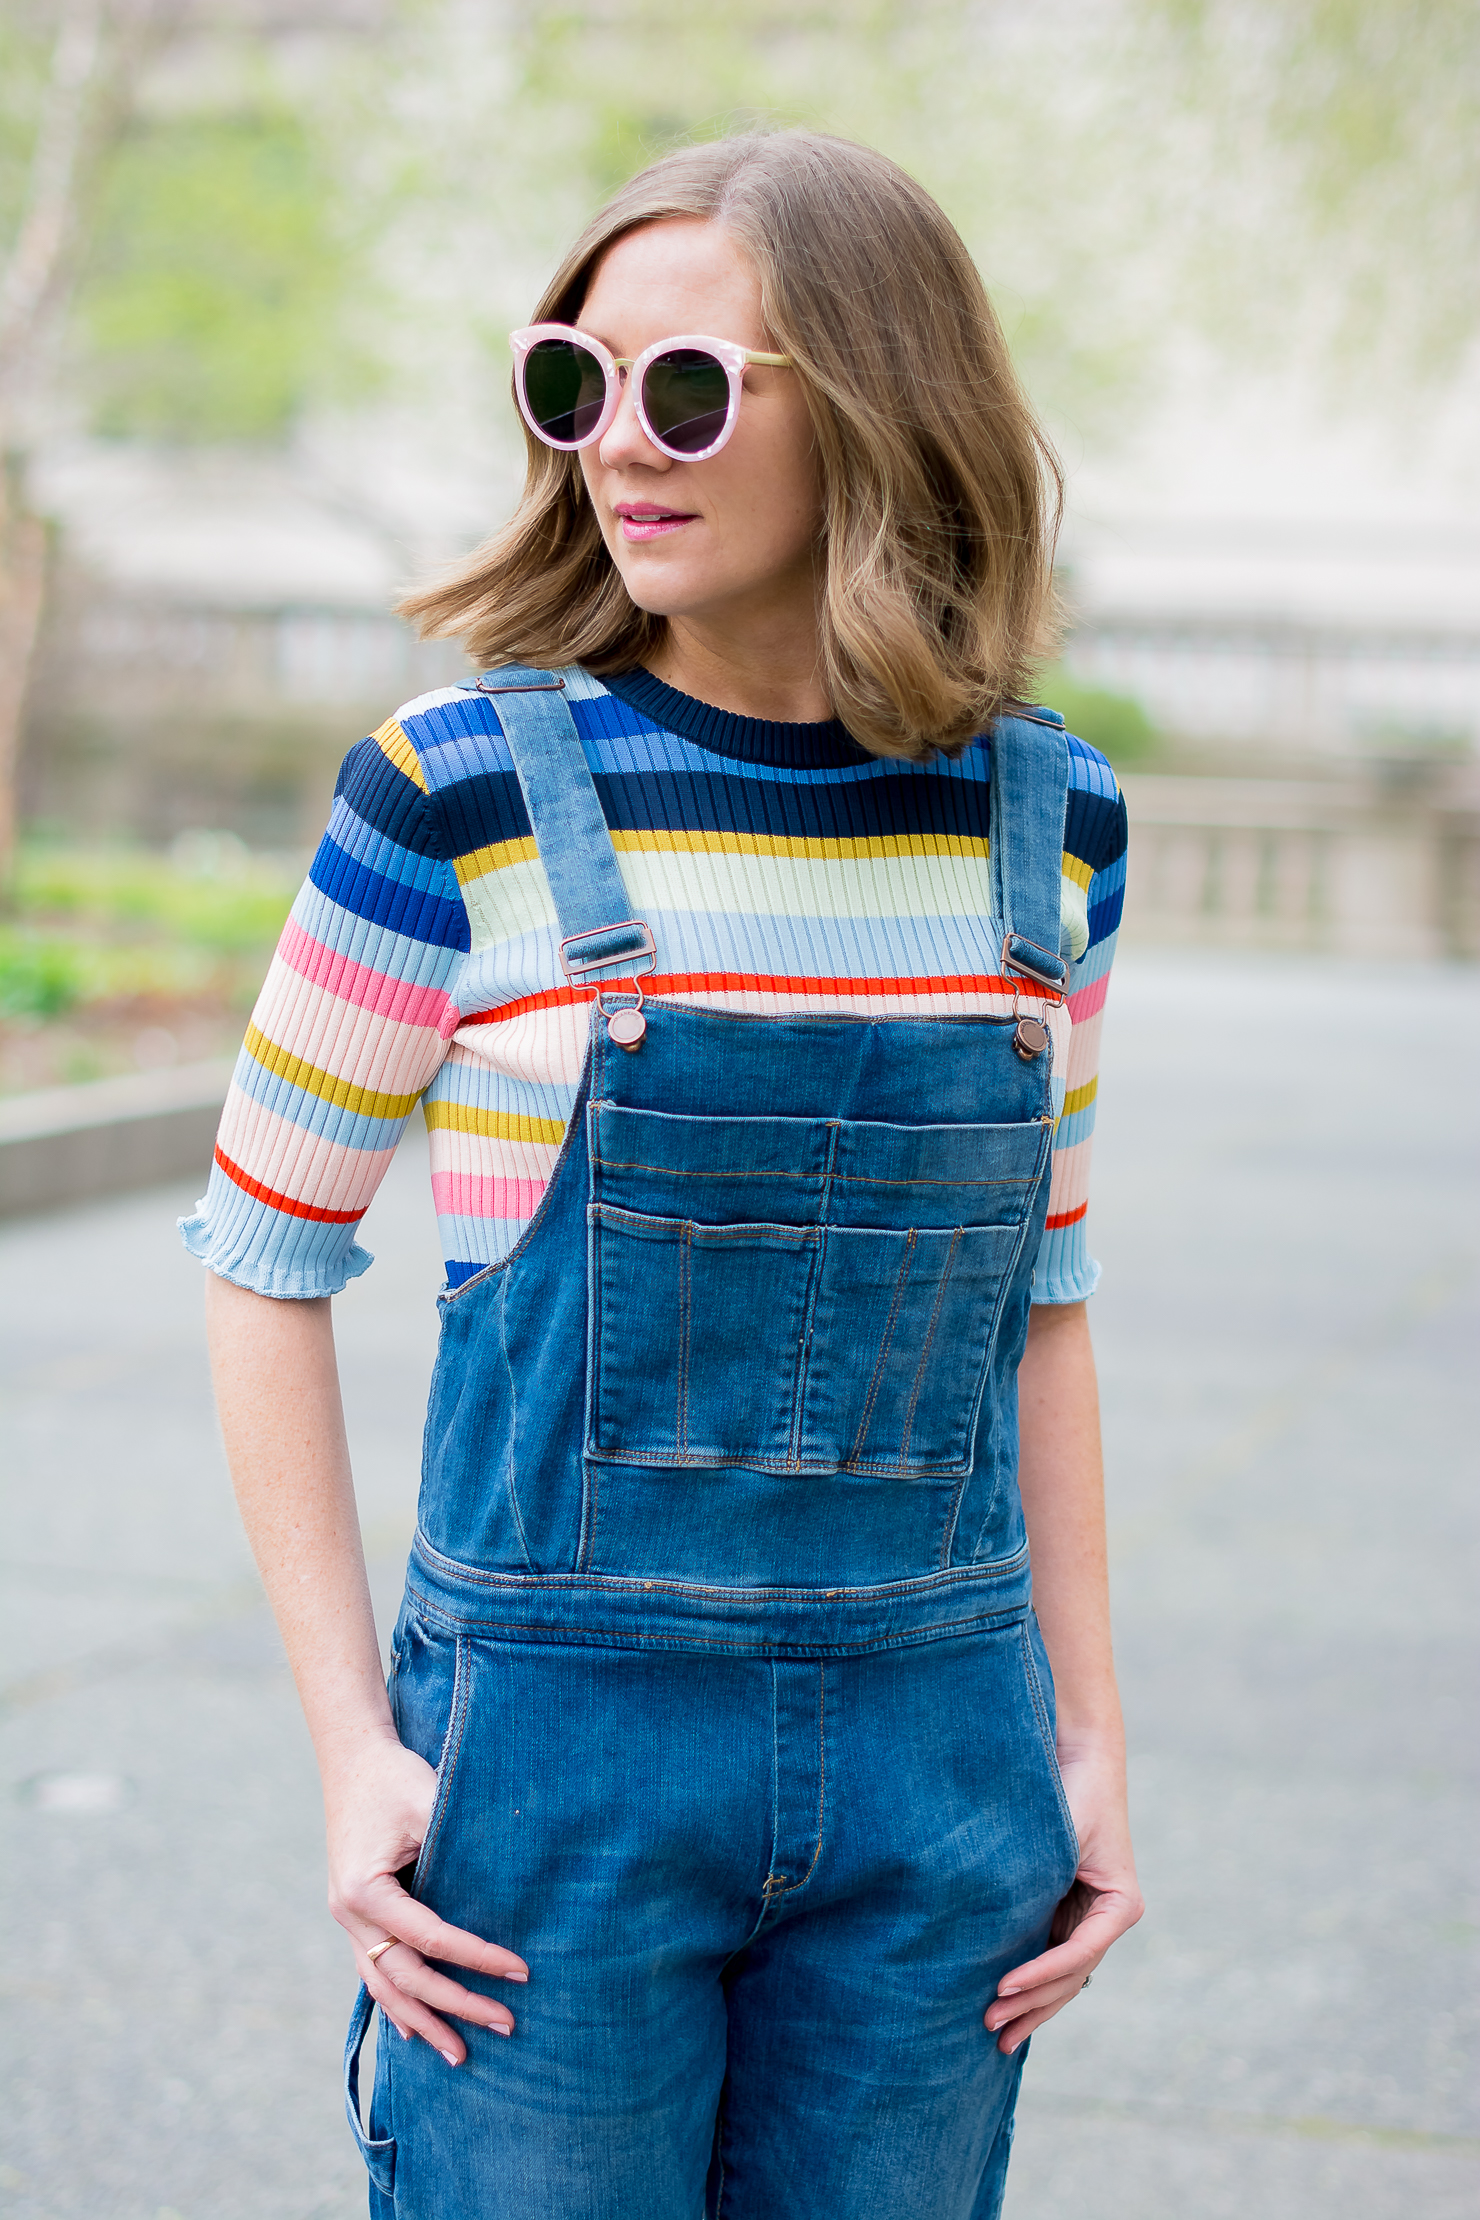 blank-nyc-skinny-overalls-h&m-rib-knit-multicolor-striped-top-forever-21-pink-marble-sunglasses-the-art-institute-of-chicago